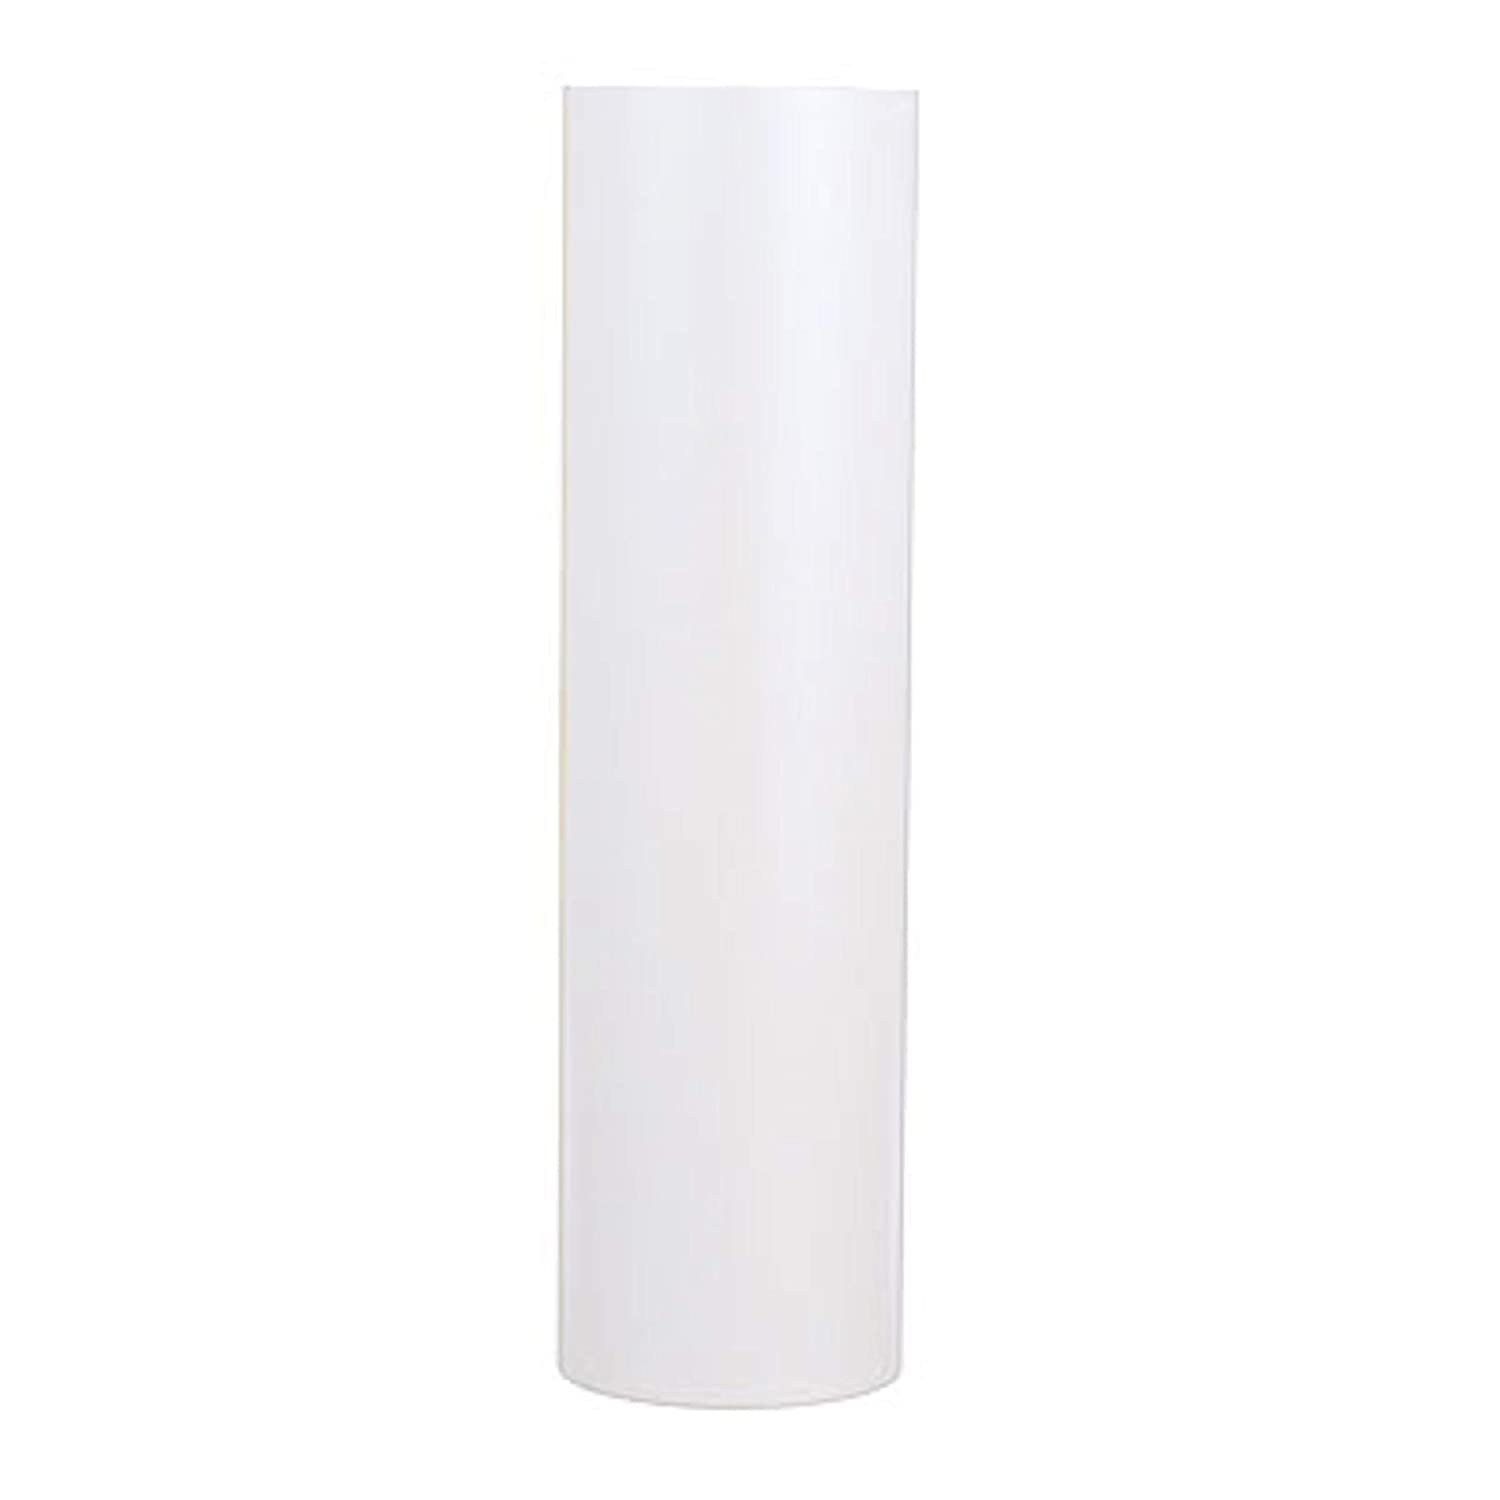 Image of 3M Vinyl Sandblast Resist Tape 480V, White, 18 in x 20 yd, 8.0 mil Home Improvements